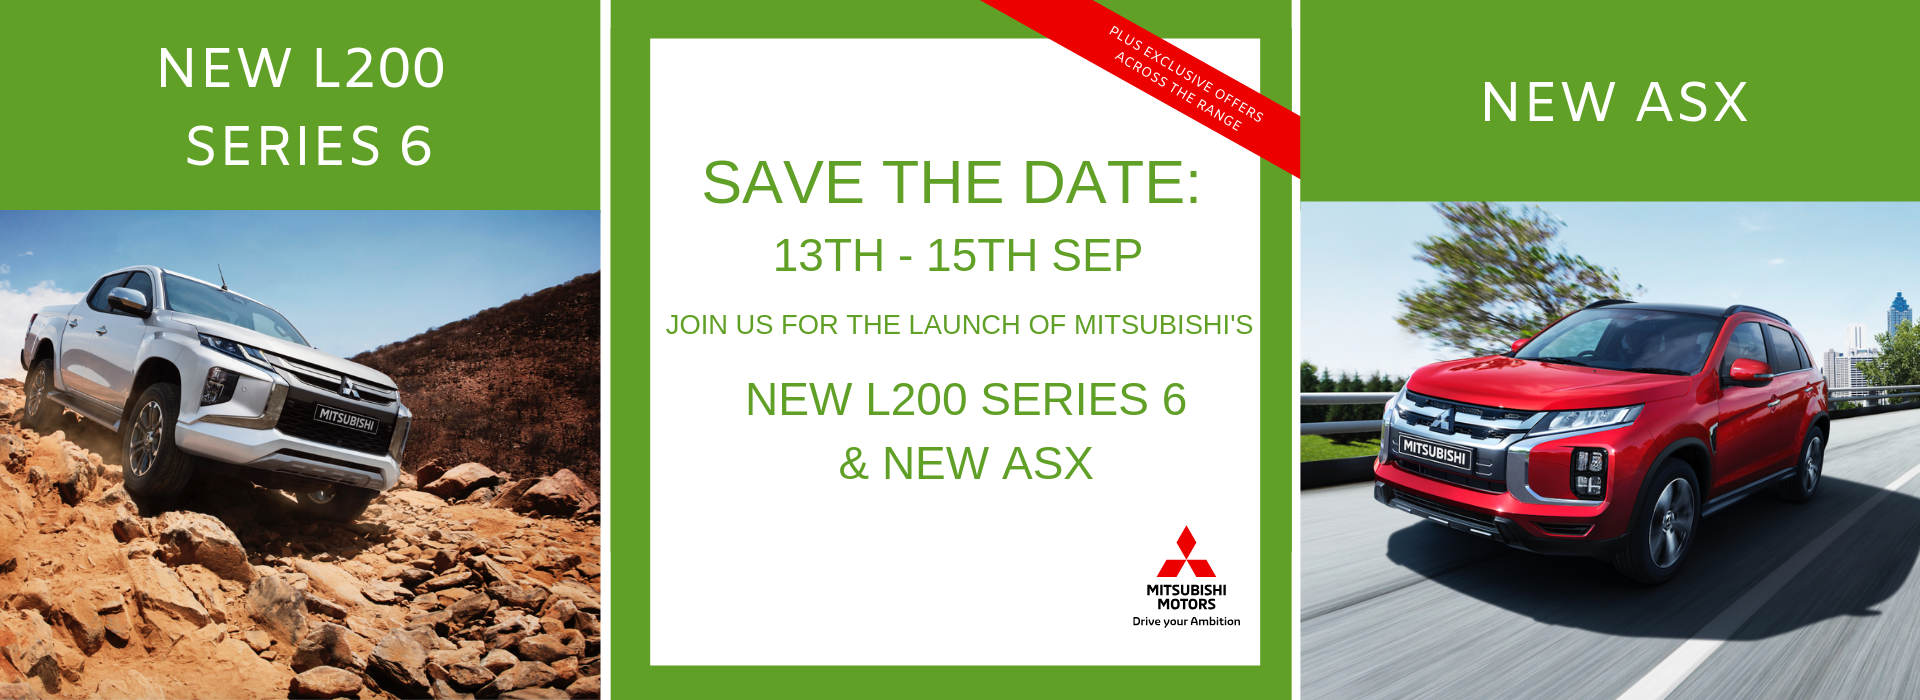 New l200 Series 6 and New ASX launch event at Littlewick Motor Group - 13th to 15th September